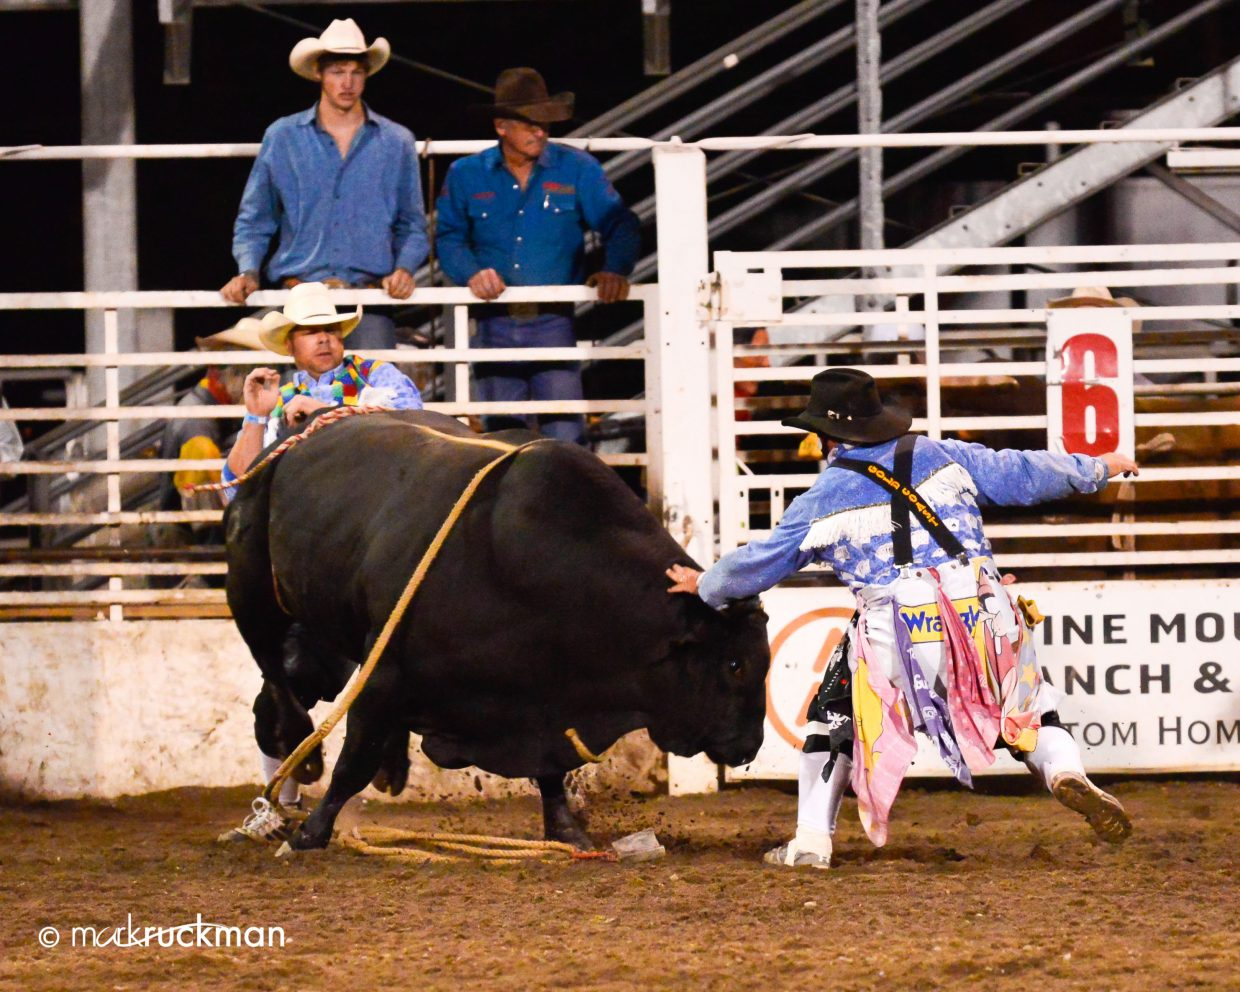 Gary Singer distracting a bull. Submitted by: Mark Ruckman